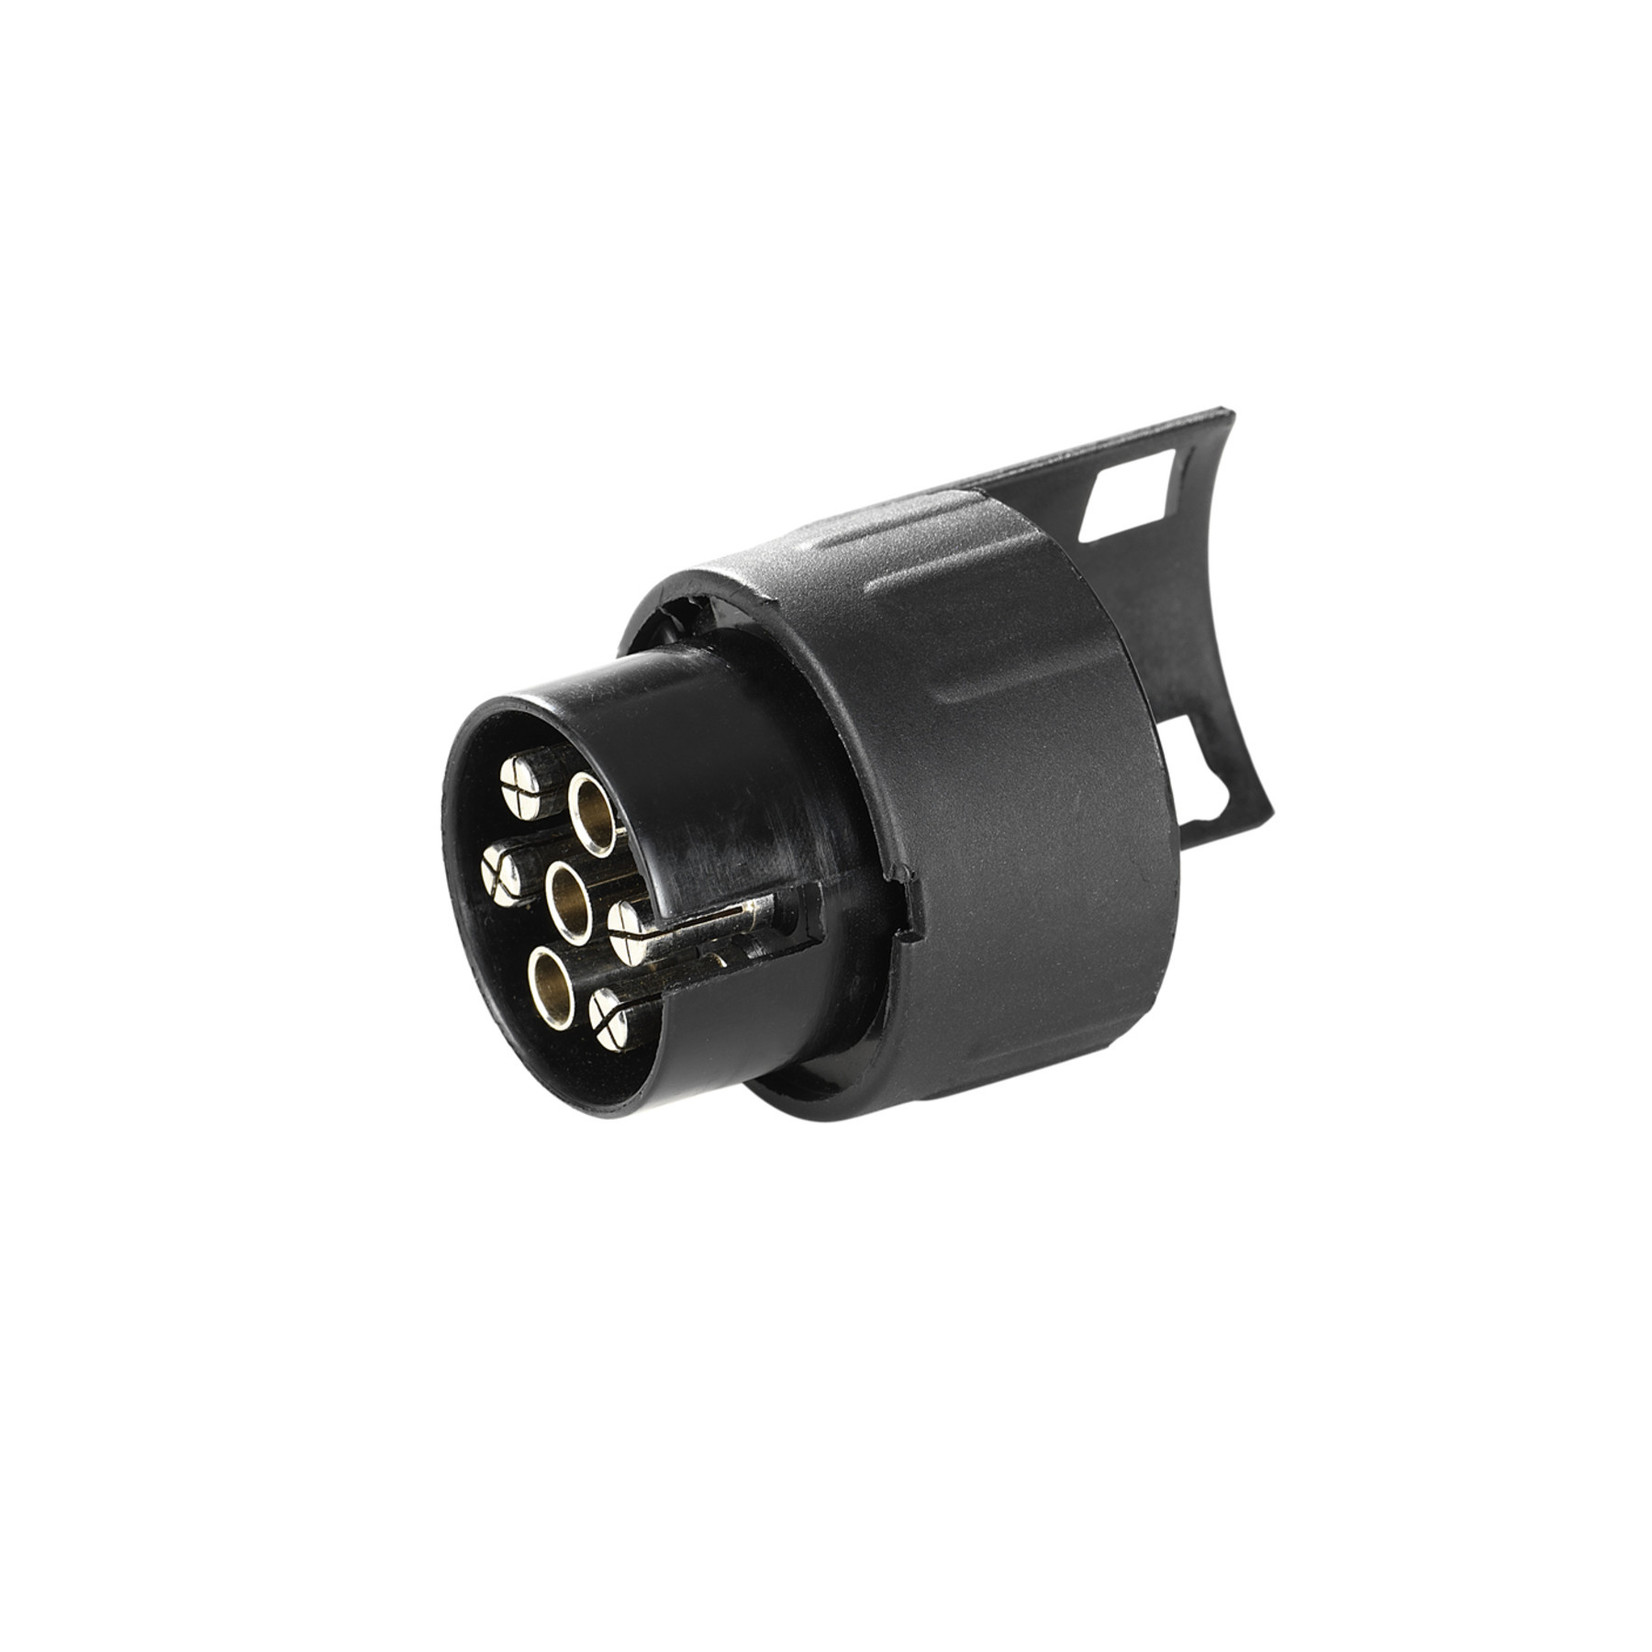 THULE Adapter 9906 - 7 TO 13 PIN